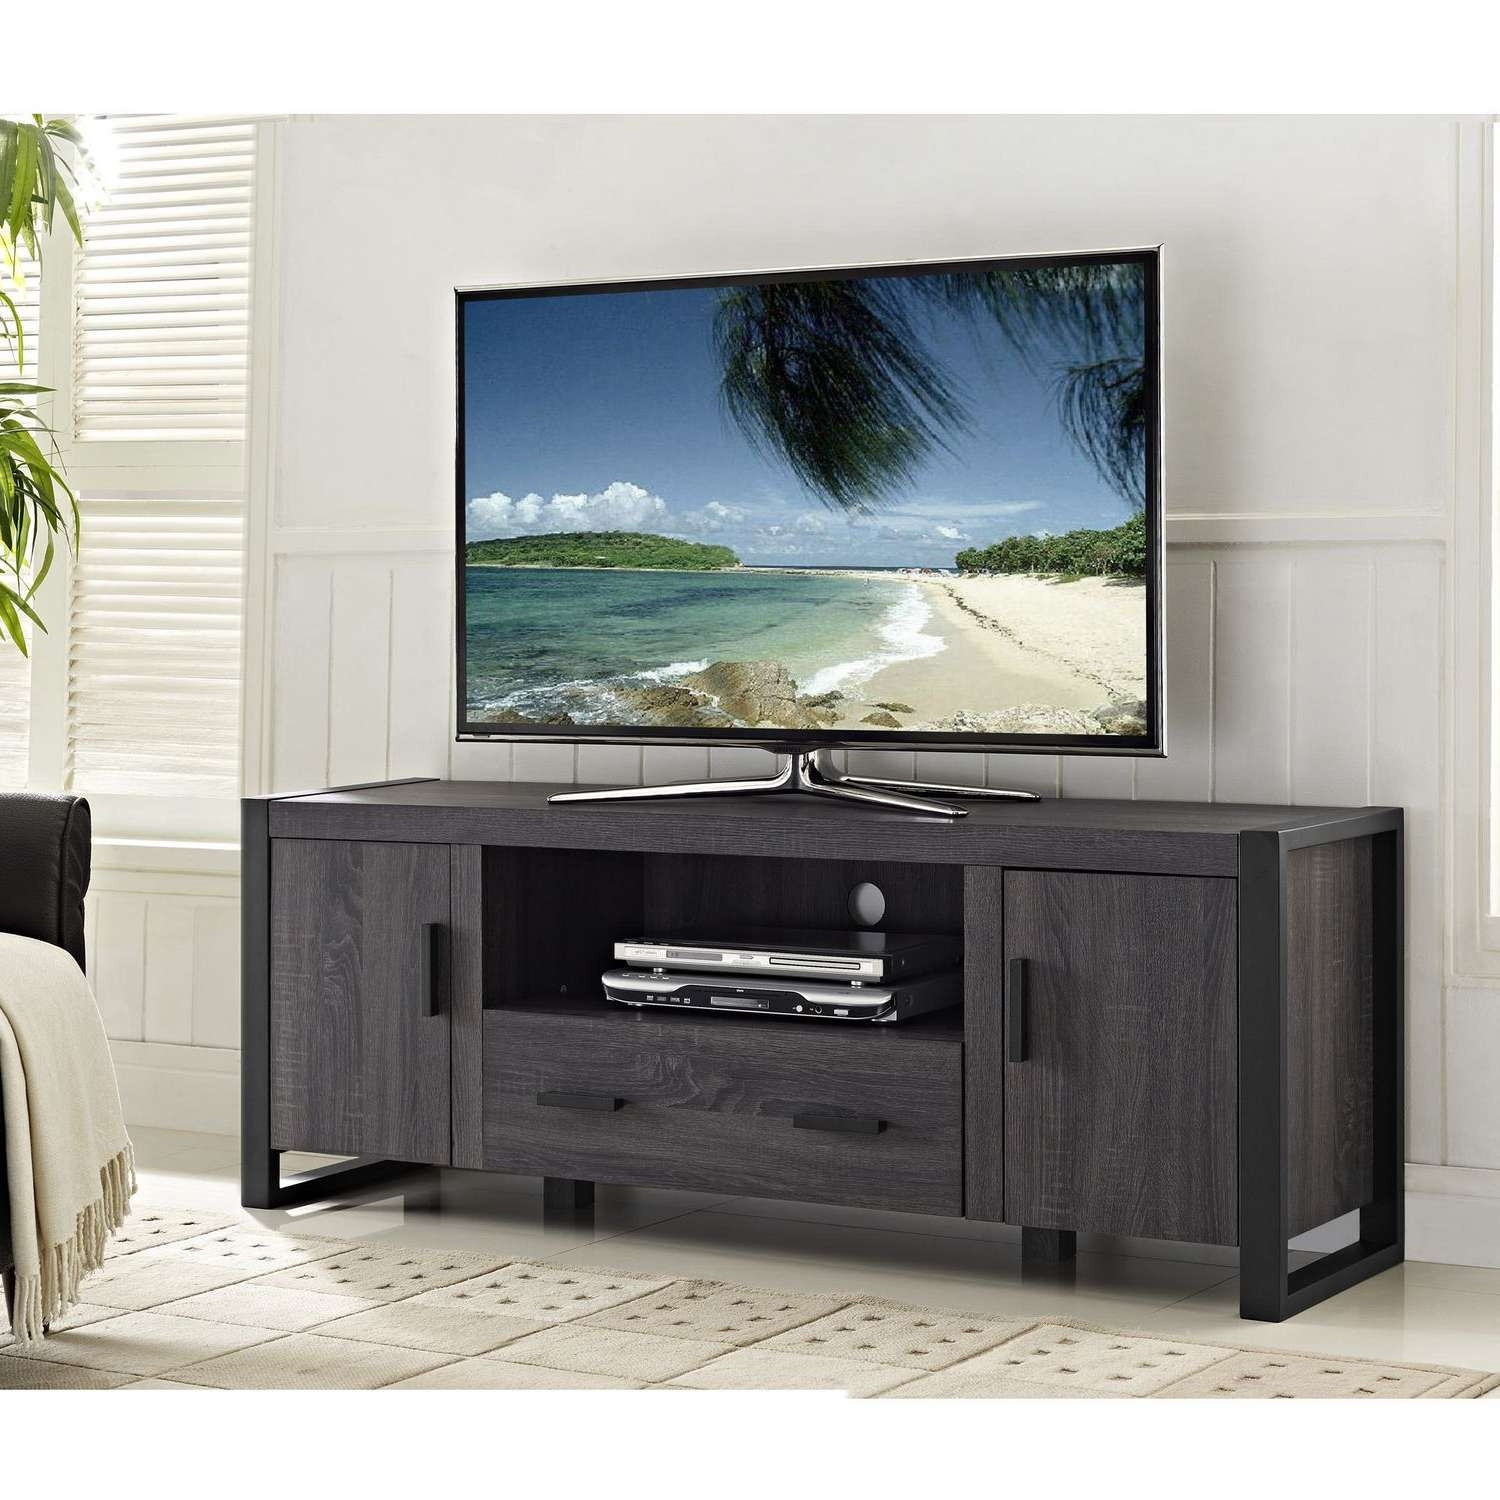 "We Furniture 60"" Grey Wood Tv Stand Console 